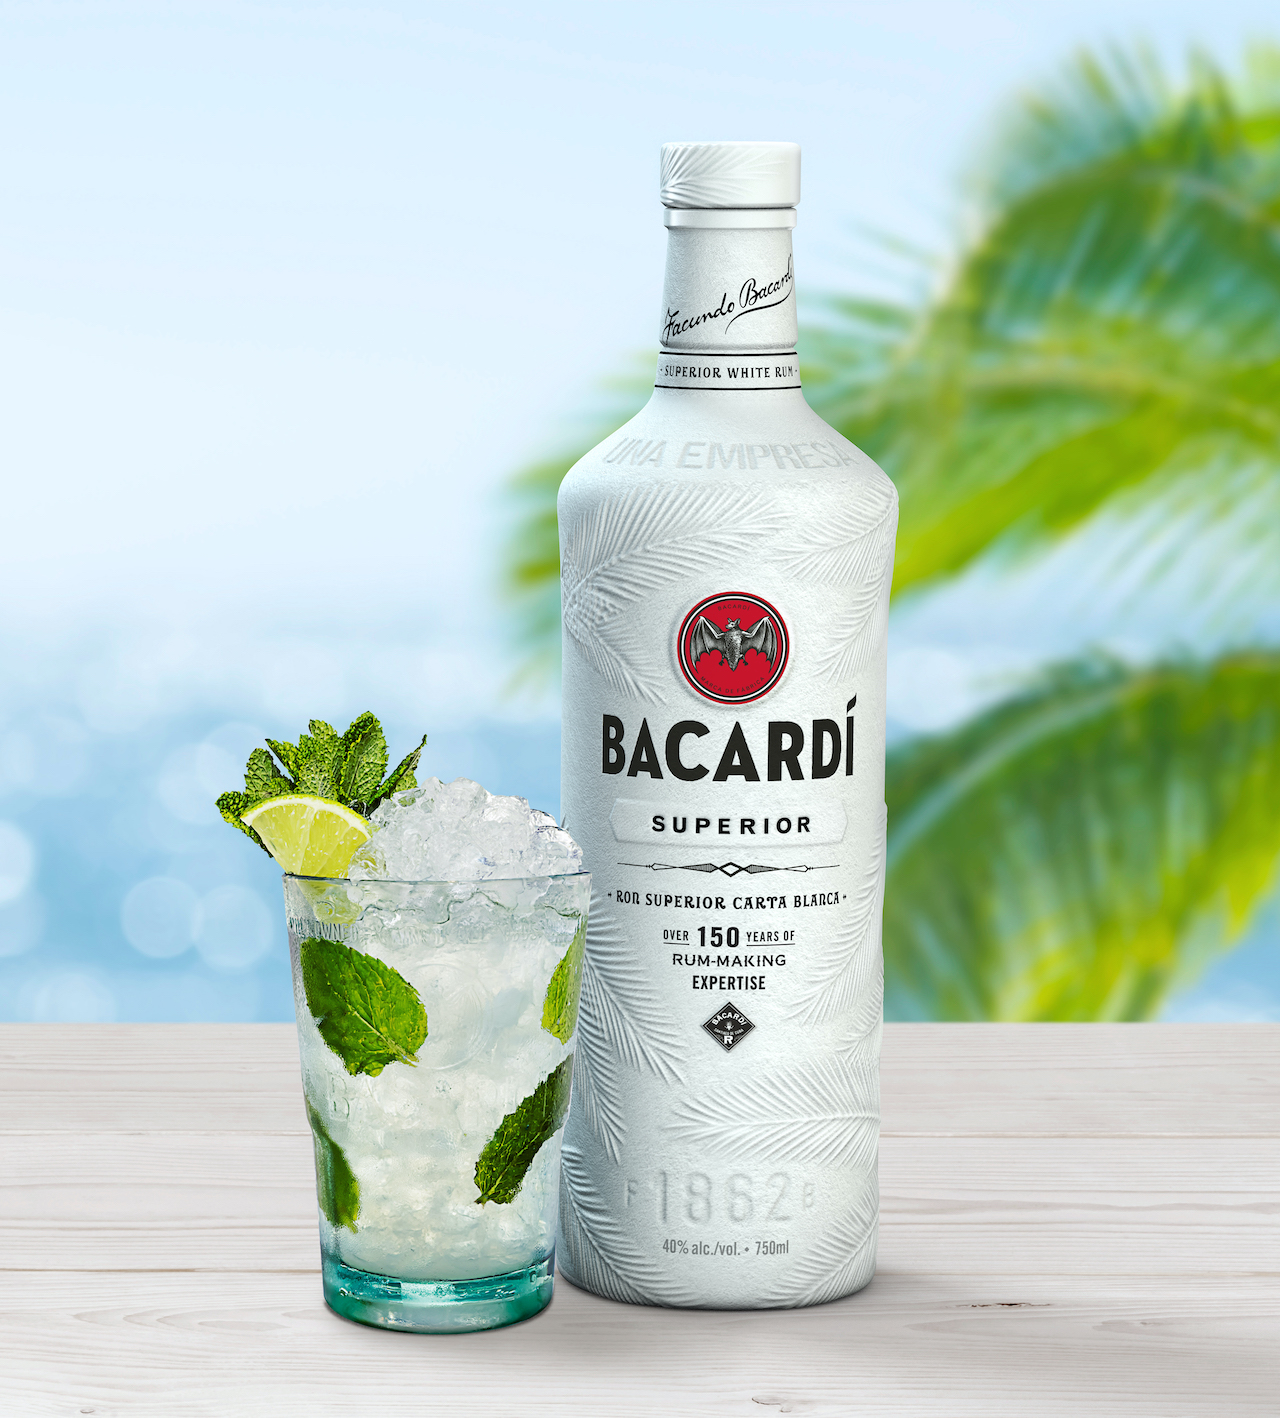 Bacardi bottle and drink